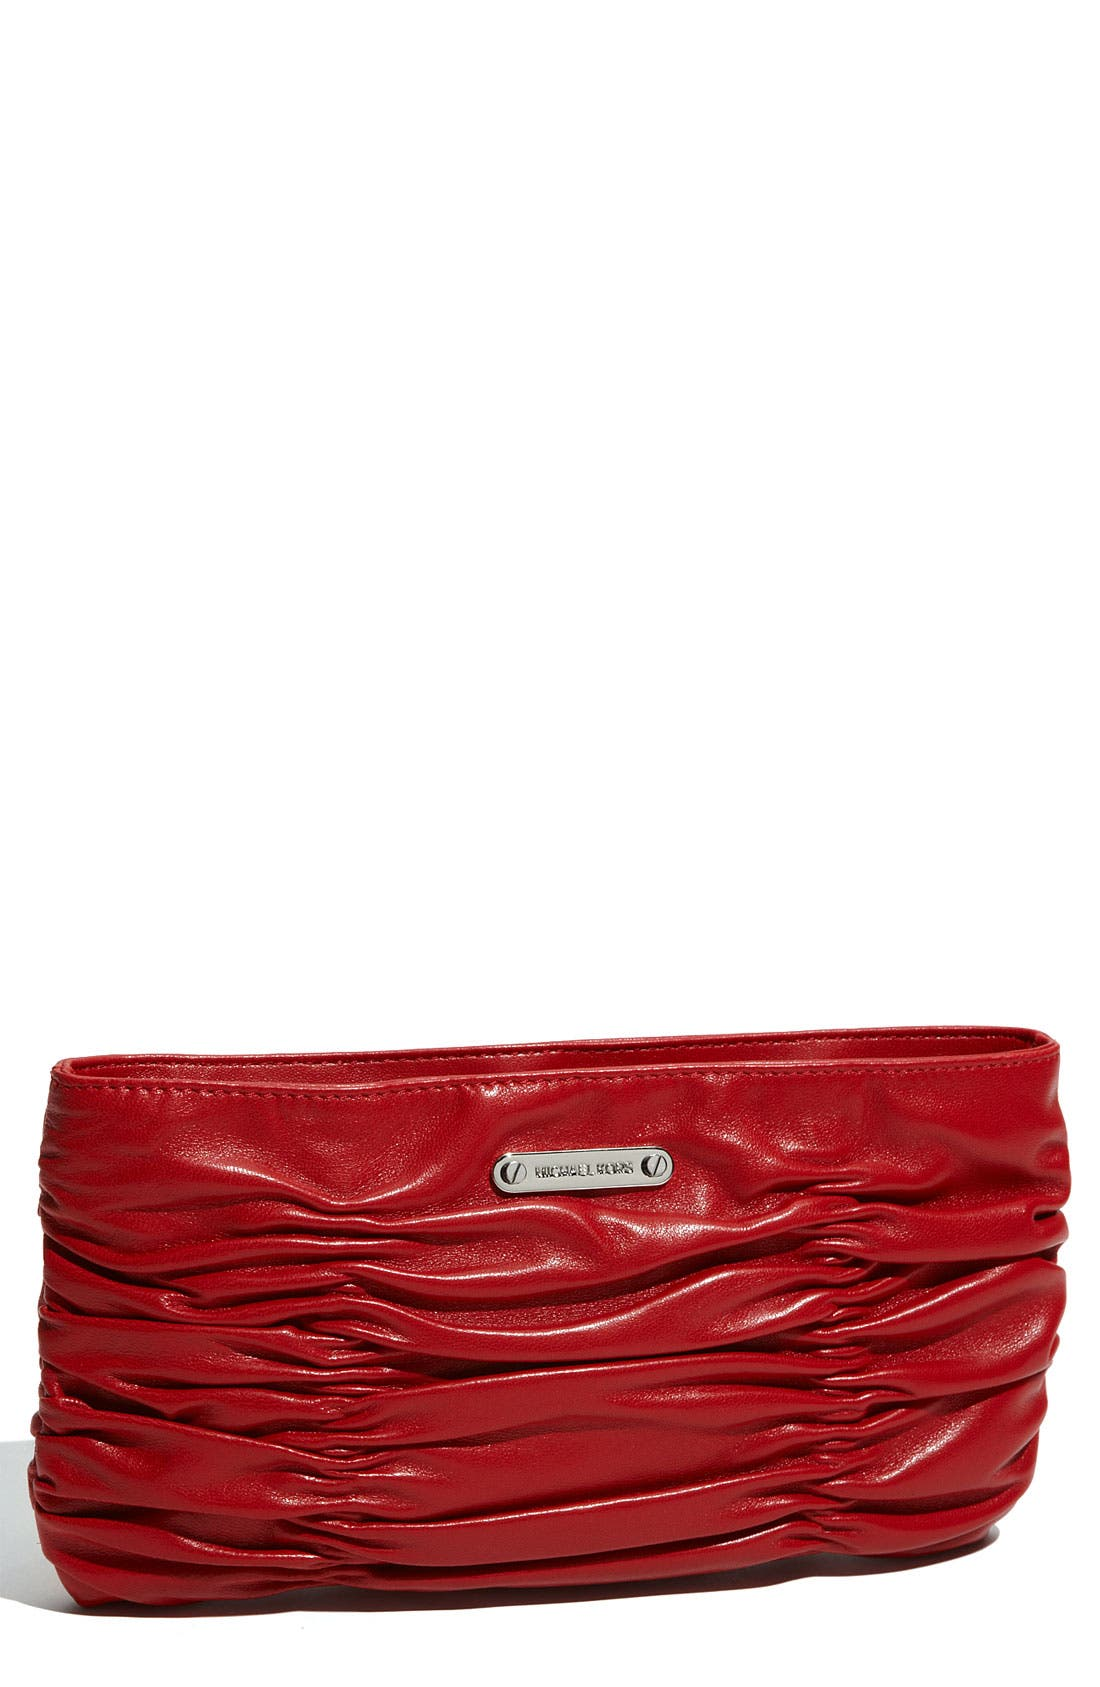 Main Image - MICHAEL Michael Kors 'Webster' Clutch